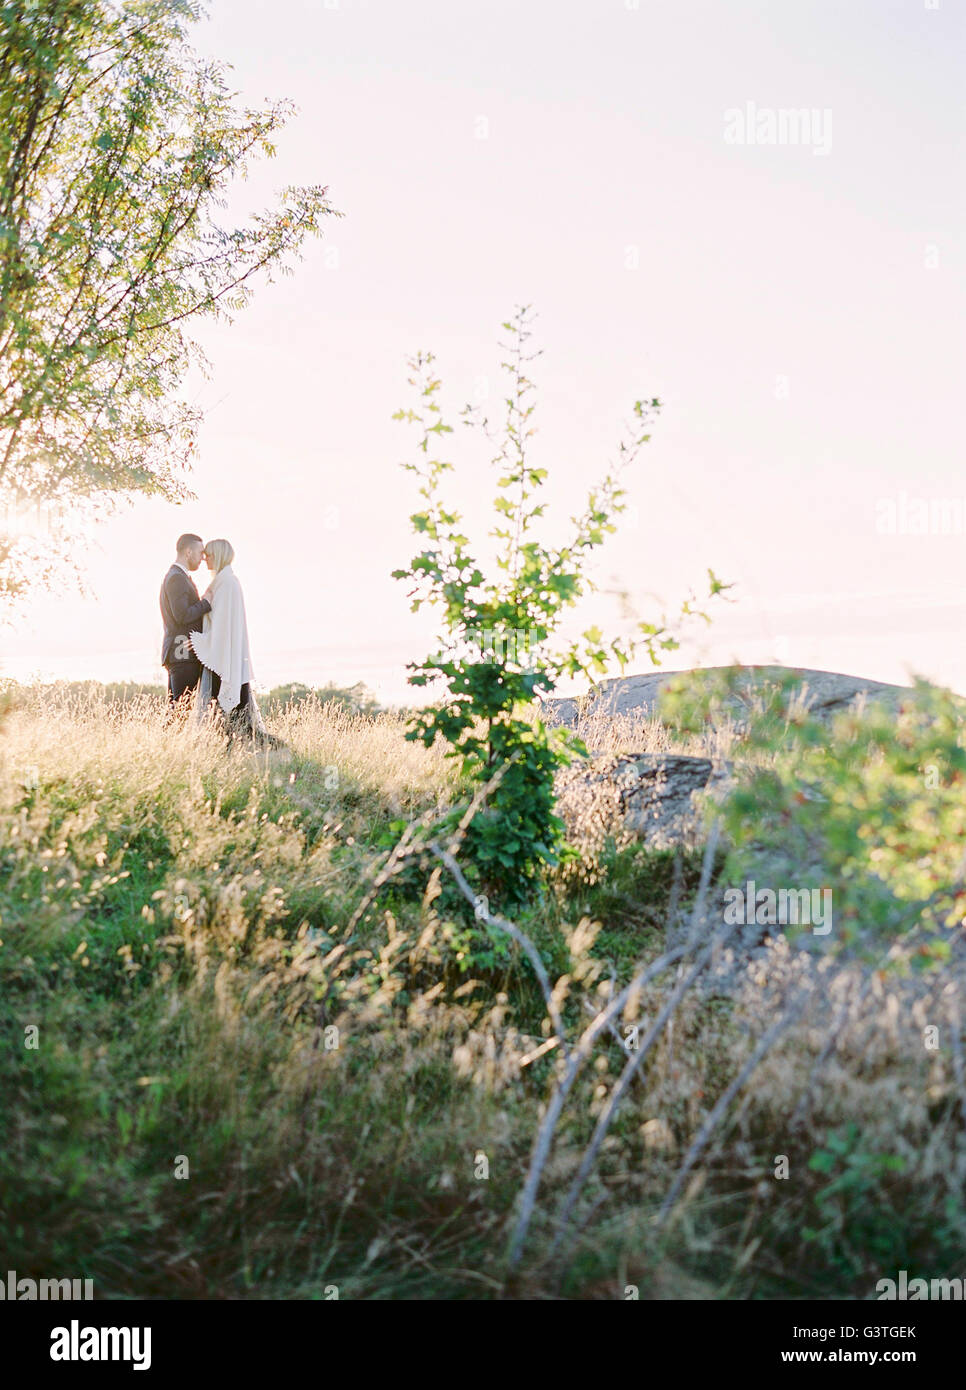 Sweden, Bride and groom standing face to face in grass - Stock Image